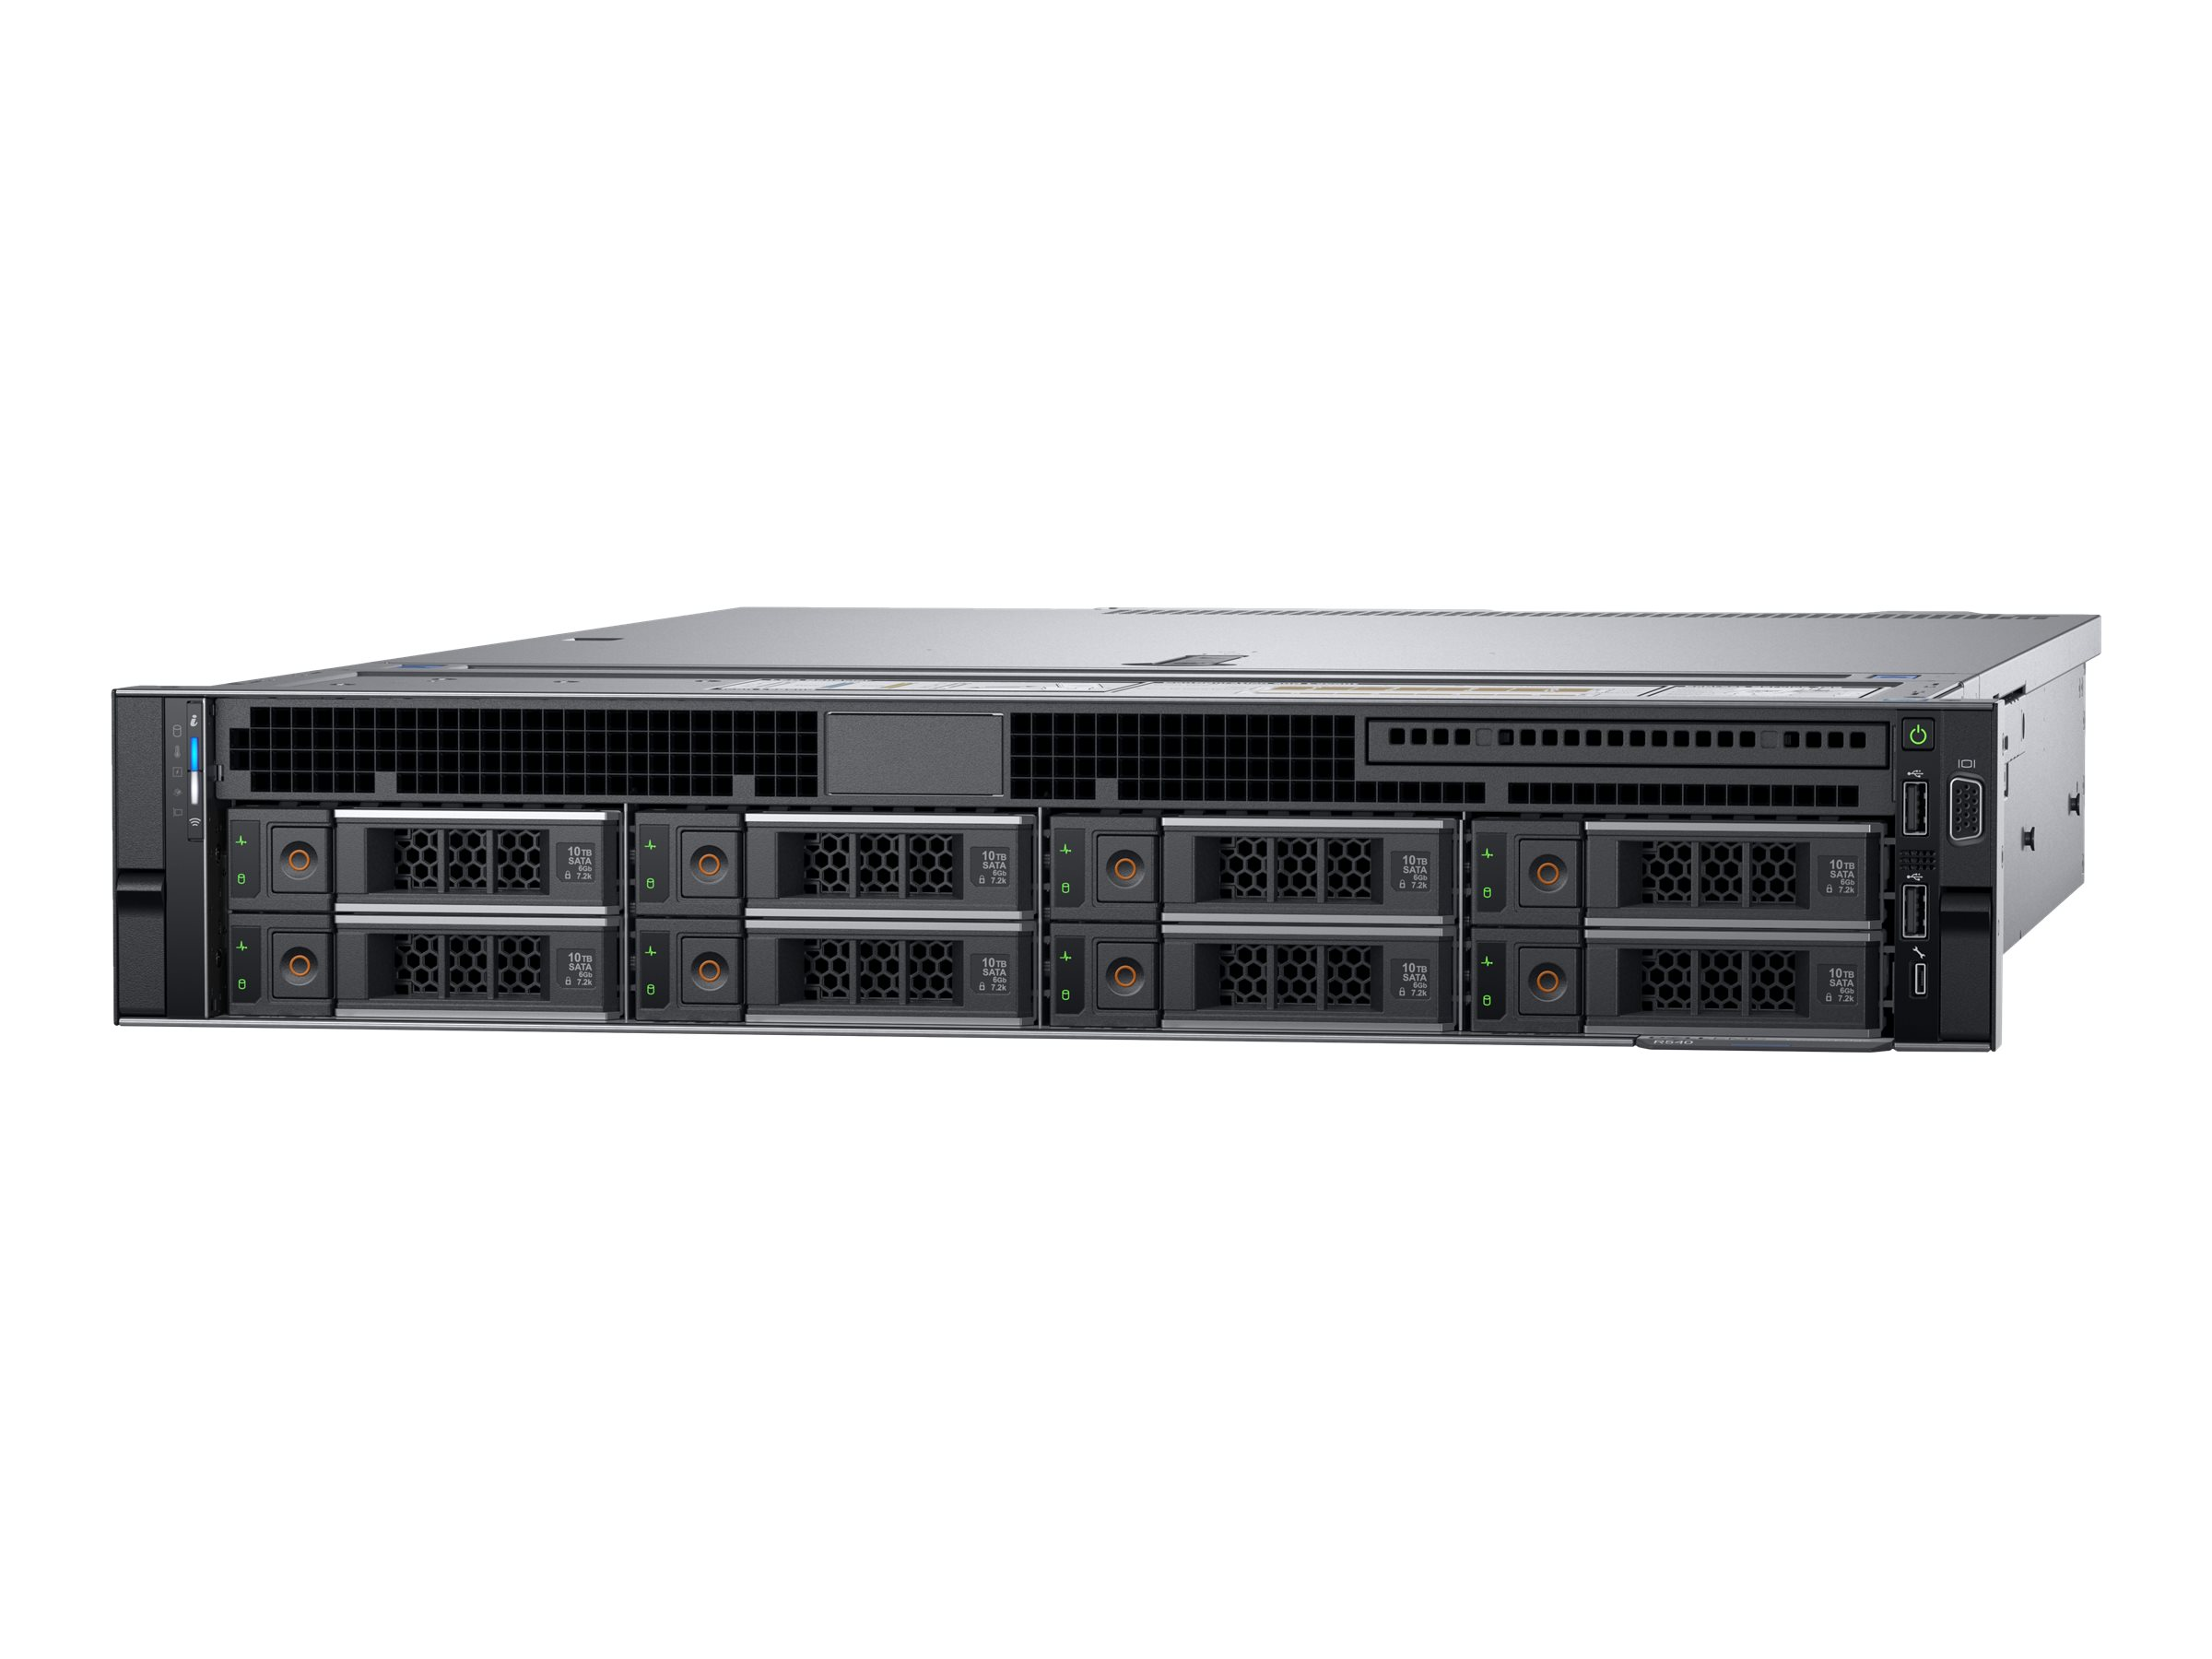 Dell EMC PowerEdge R540 - Server - Rack-Montage - 2U - zweiweg - 1 x Xeon Silver 4110 / 2.1 GHz